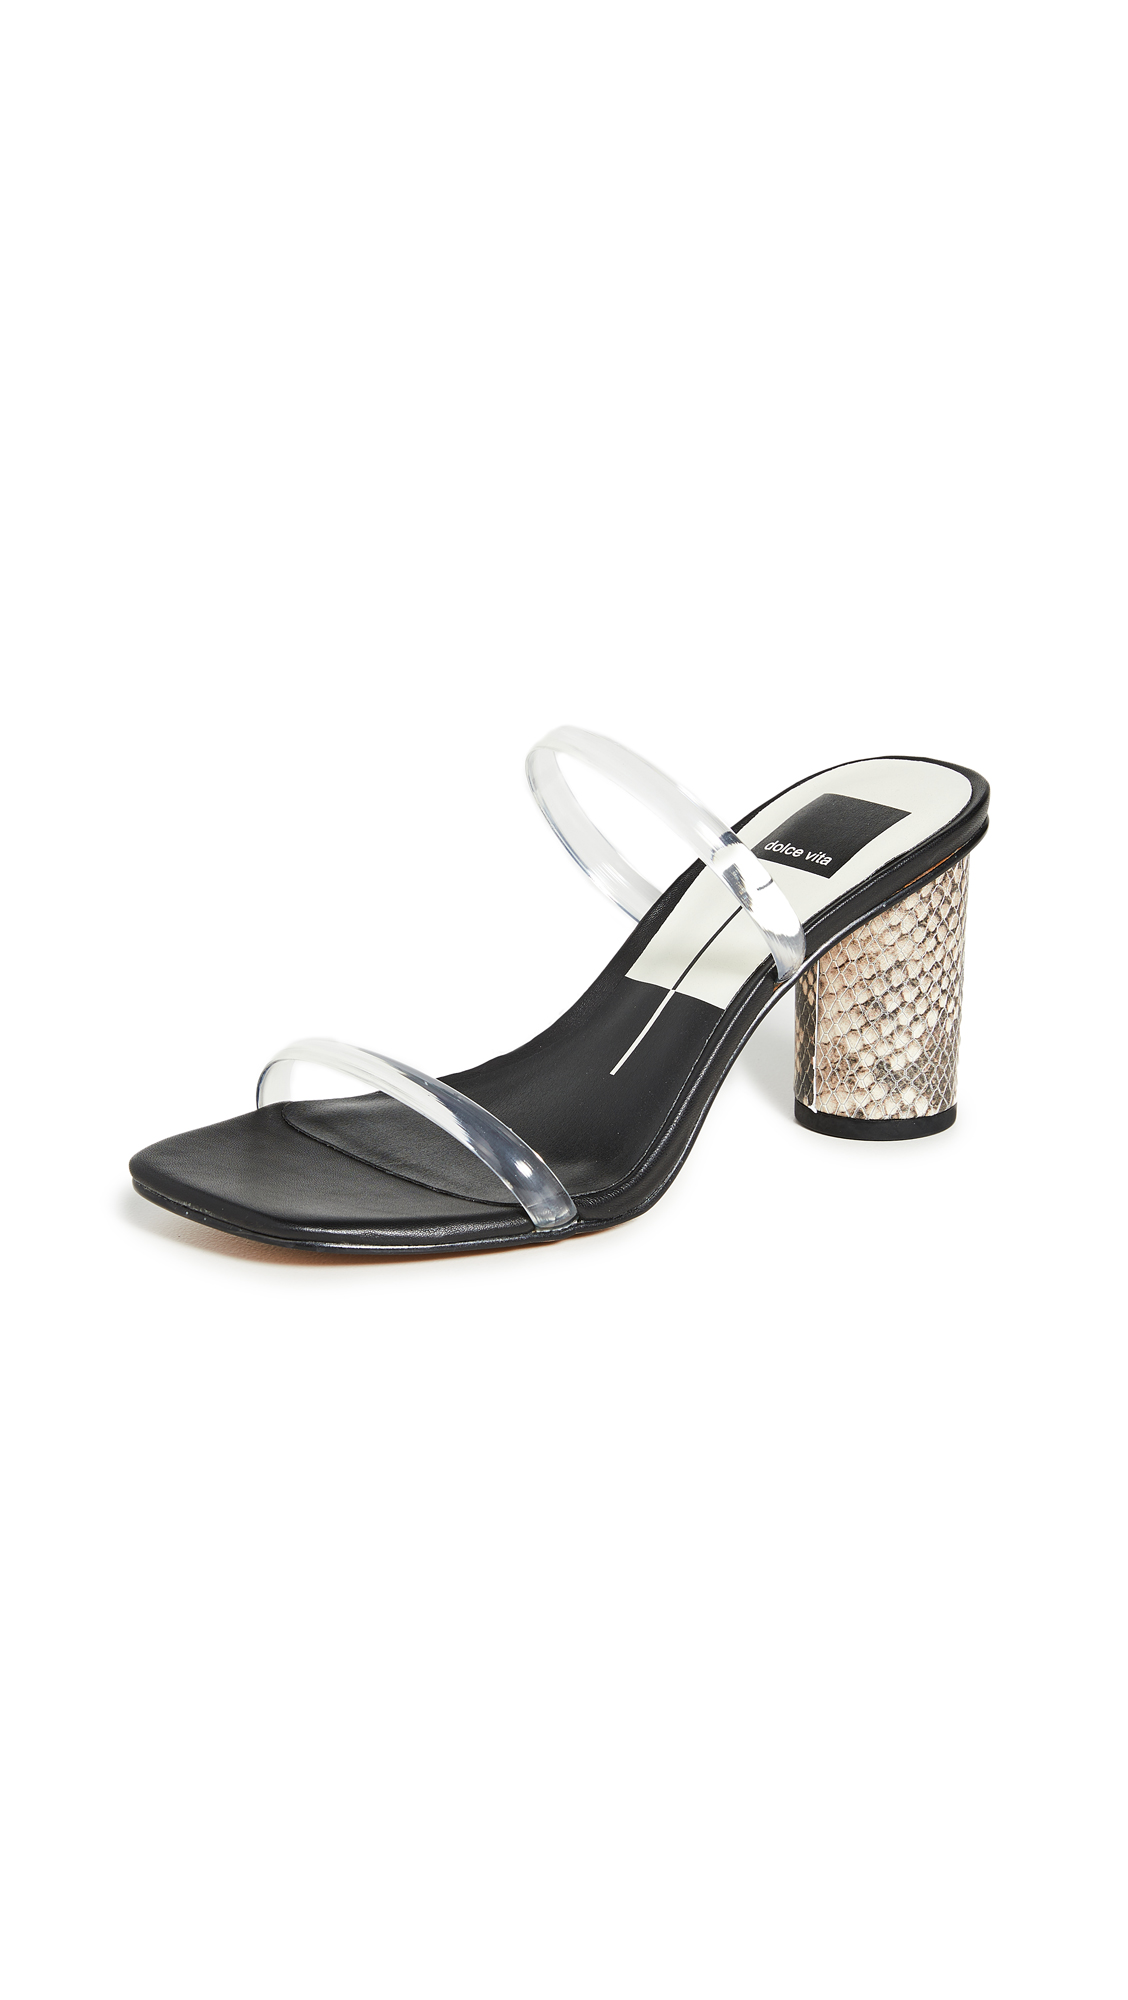 Dolce Vita Noles Vinyl Slide Sandals – 50% Off Sale